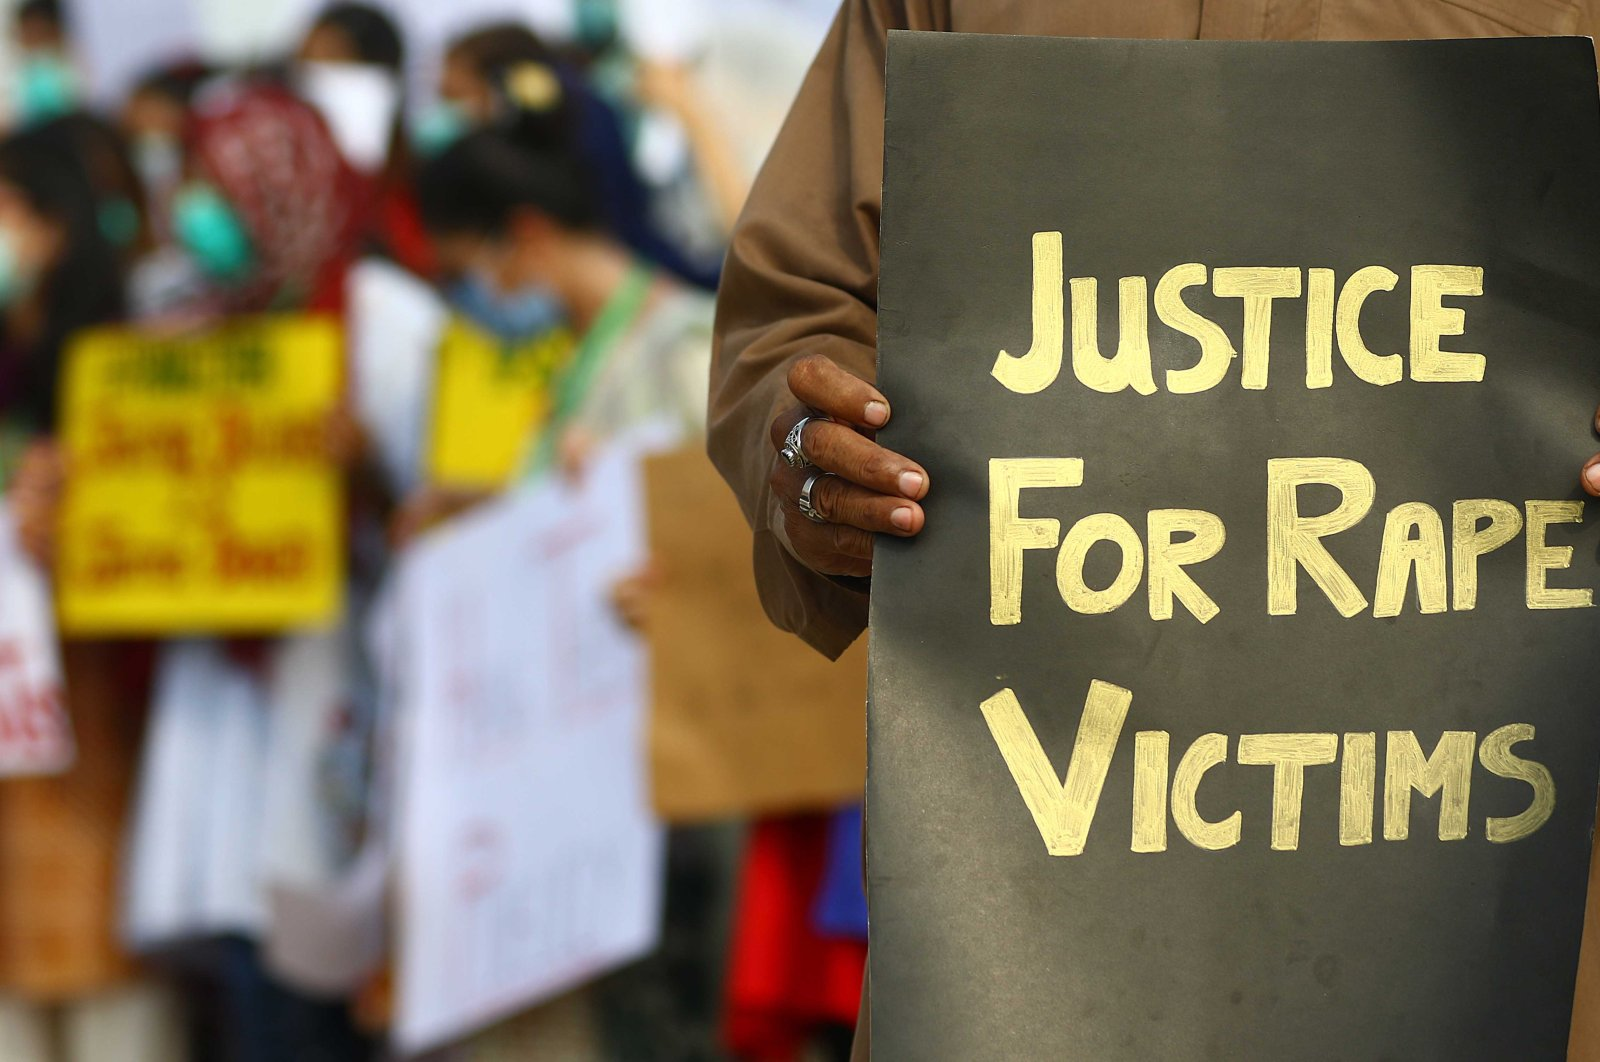 Activists of V-care welfare trust hold placards during a protest against the alleged gang rape of a woman, Karachi, Pakistan, Sept. 13, 2020. (EPA Photo)